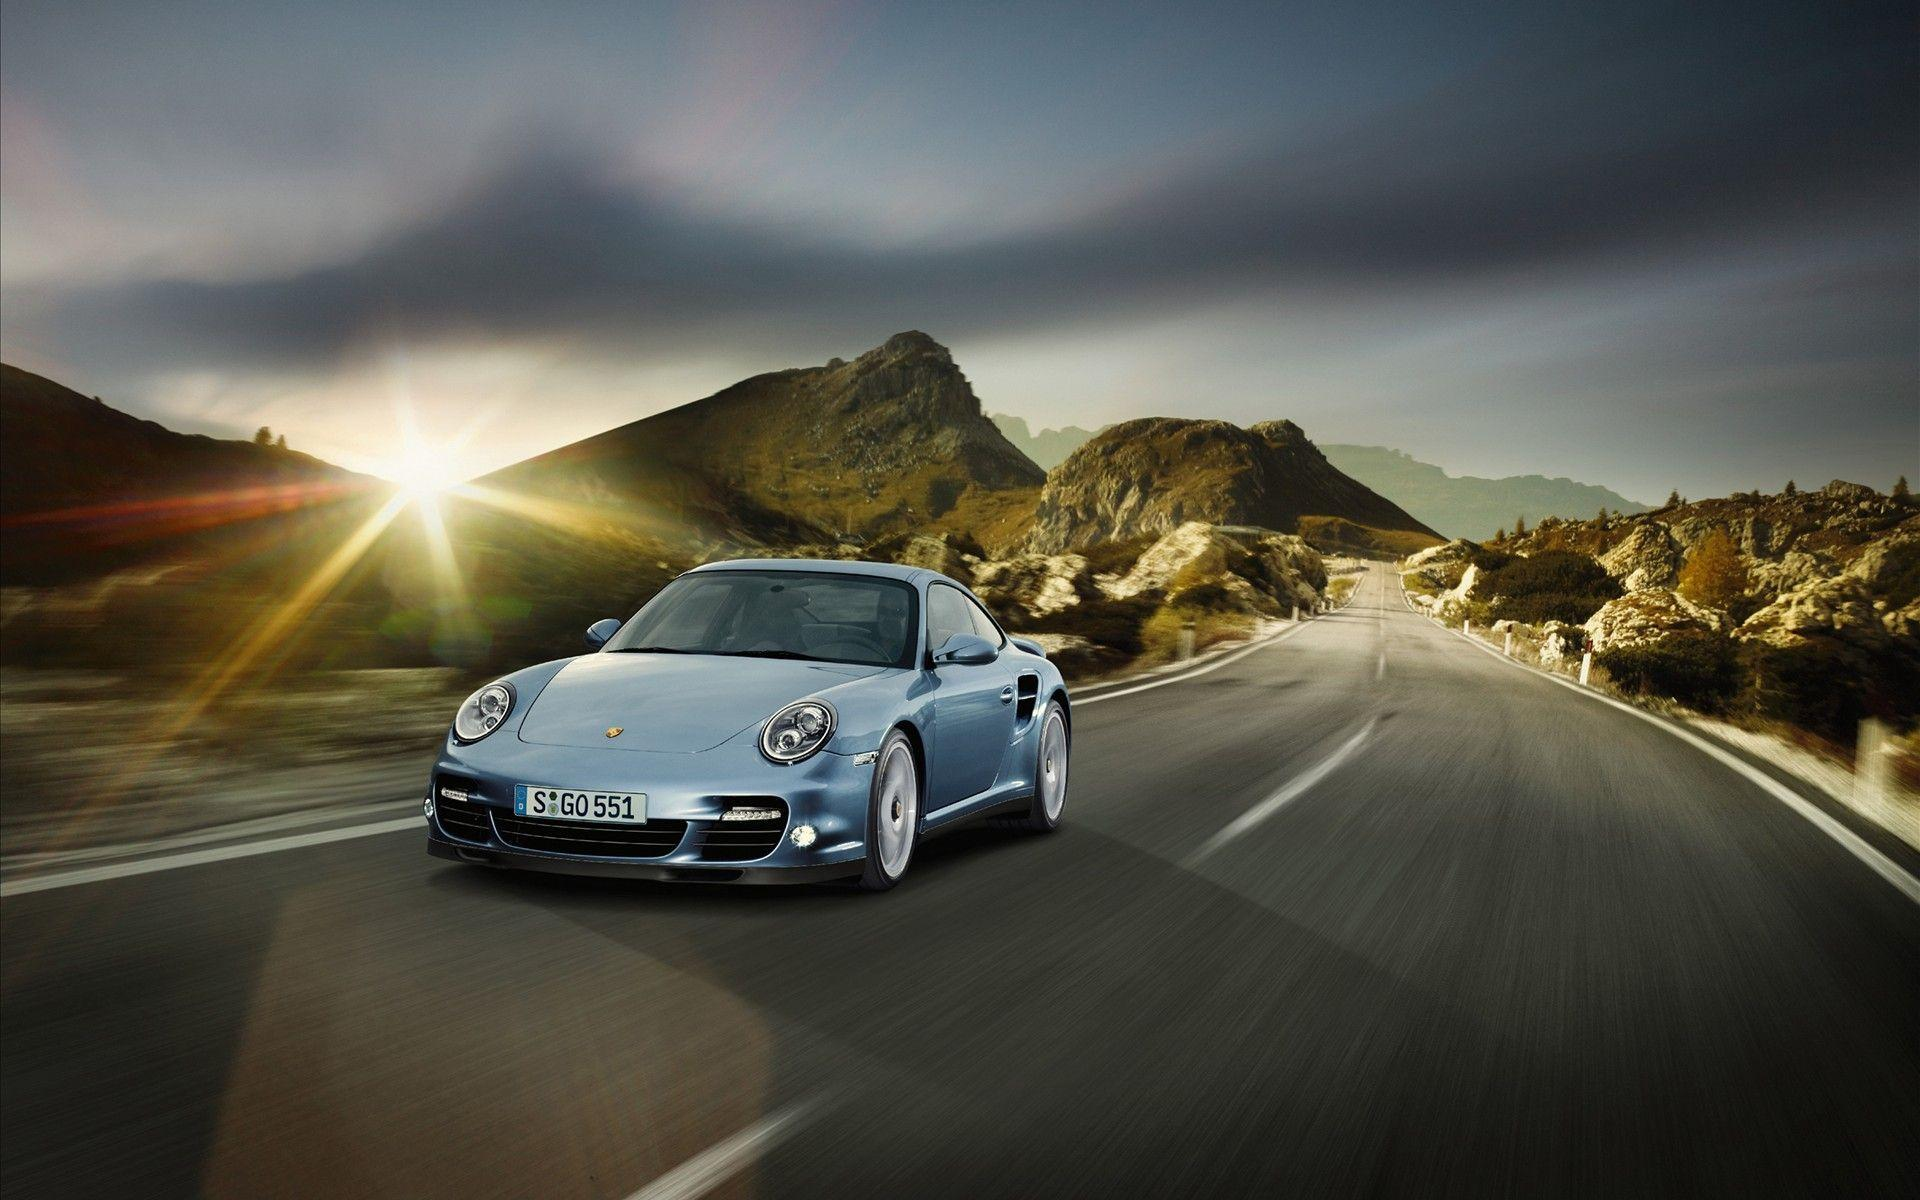 porsche desktop hd wallpapers hd wallpapers inn - Porsche 911 Wallpaper Widescreen